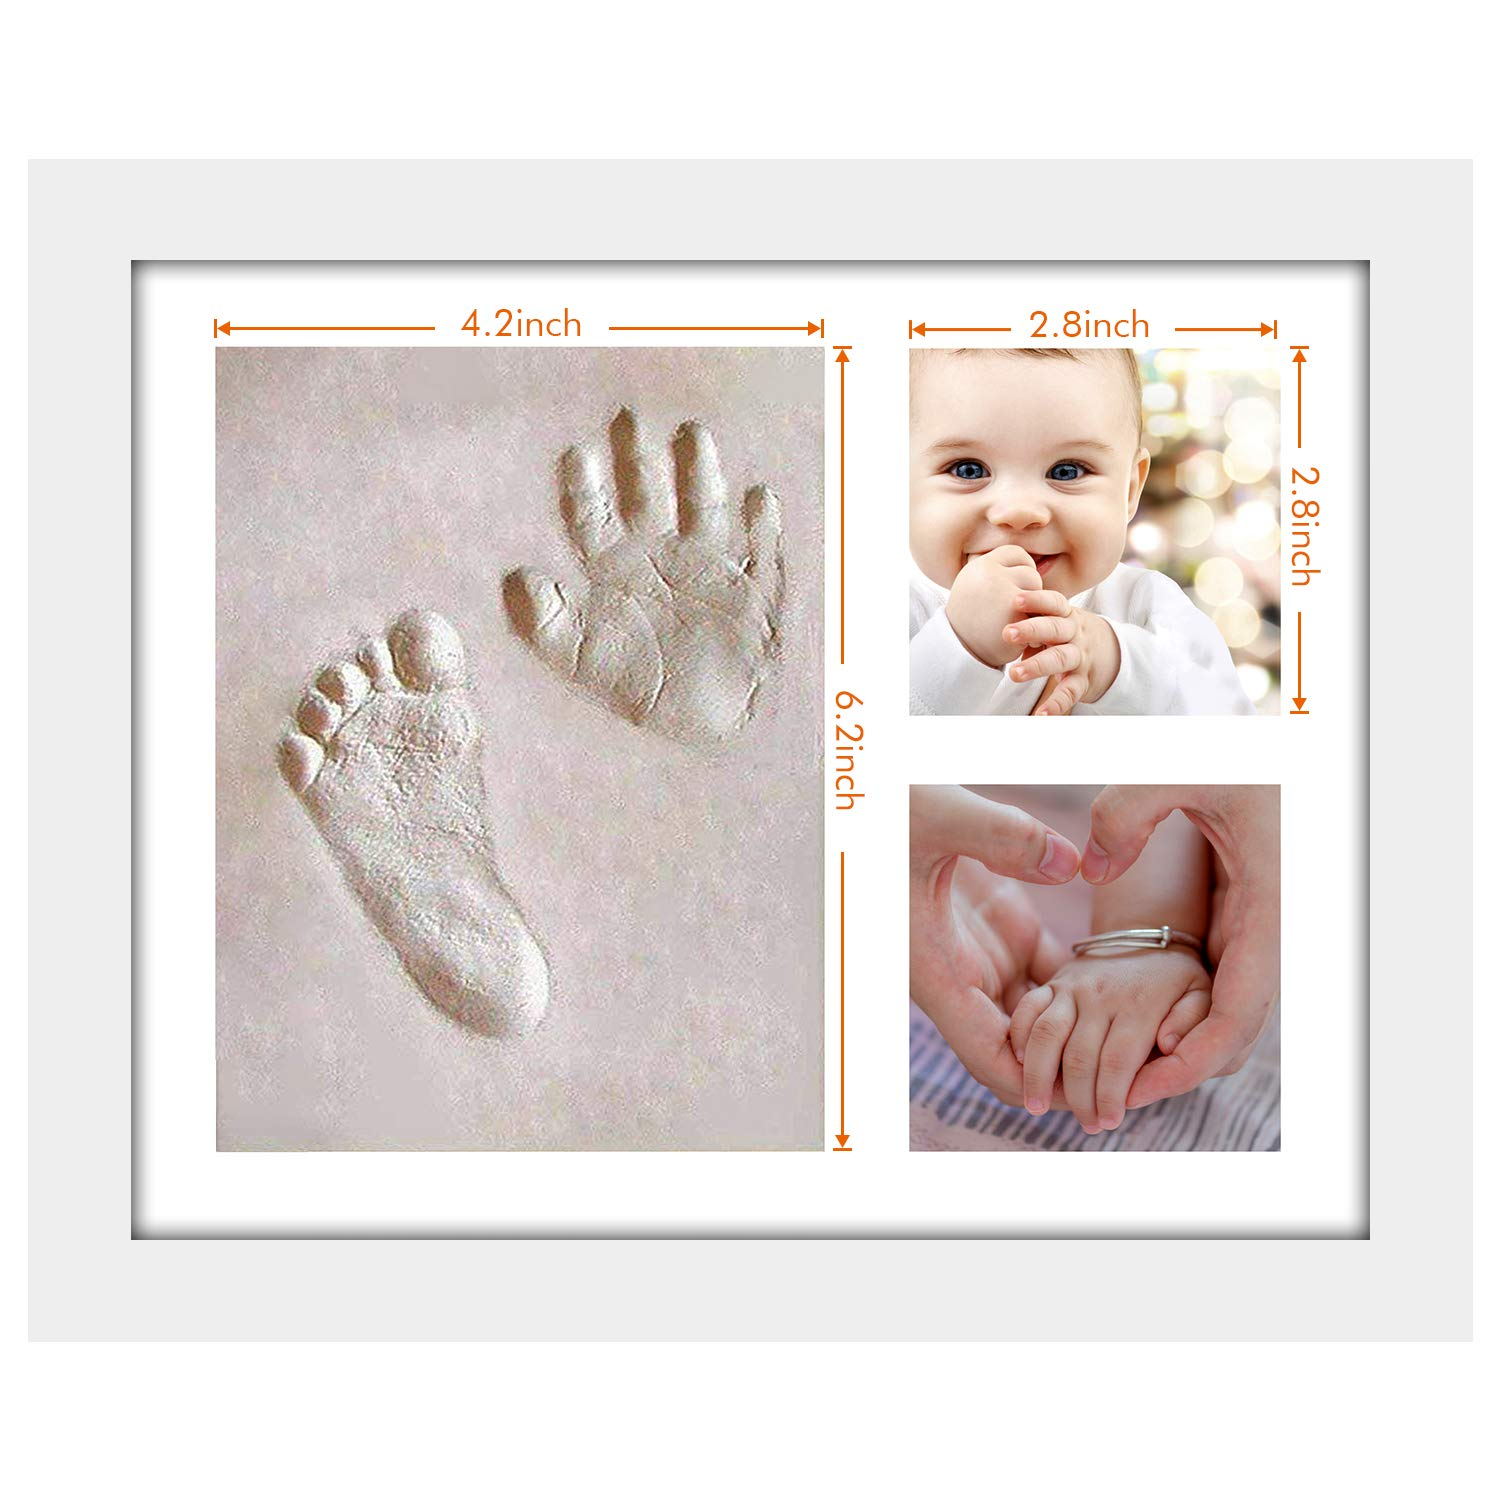 One Wall Baby Handprint Footprint Frame Kit Newborn Babyprints Keepsake Photo Frame With Non Toxic Clay For Wall Tabletop Gift For New Mom White Amazon In Baby